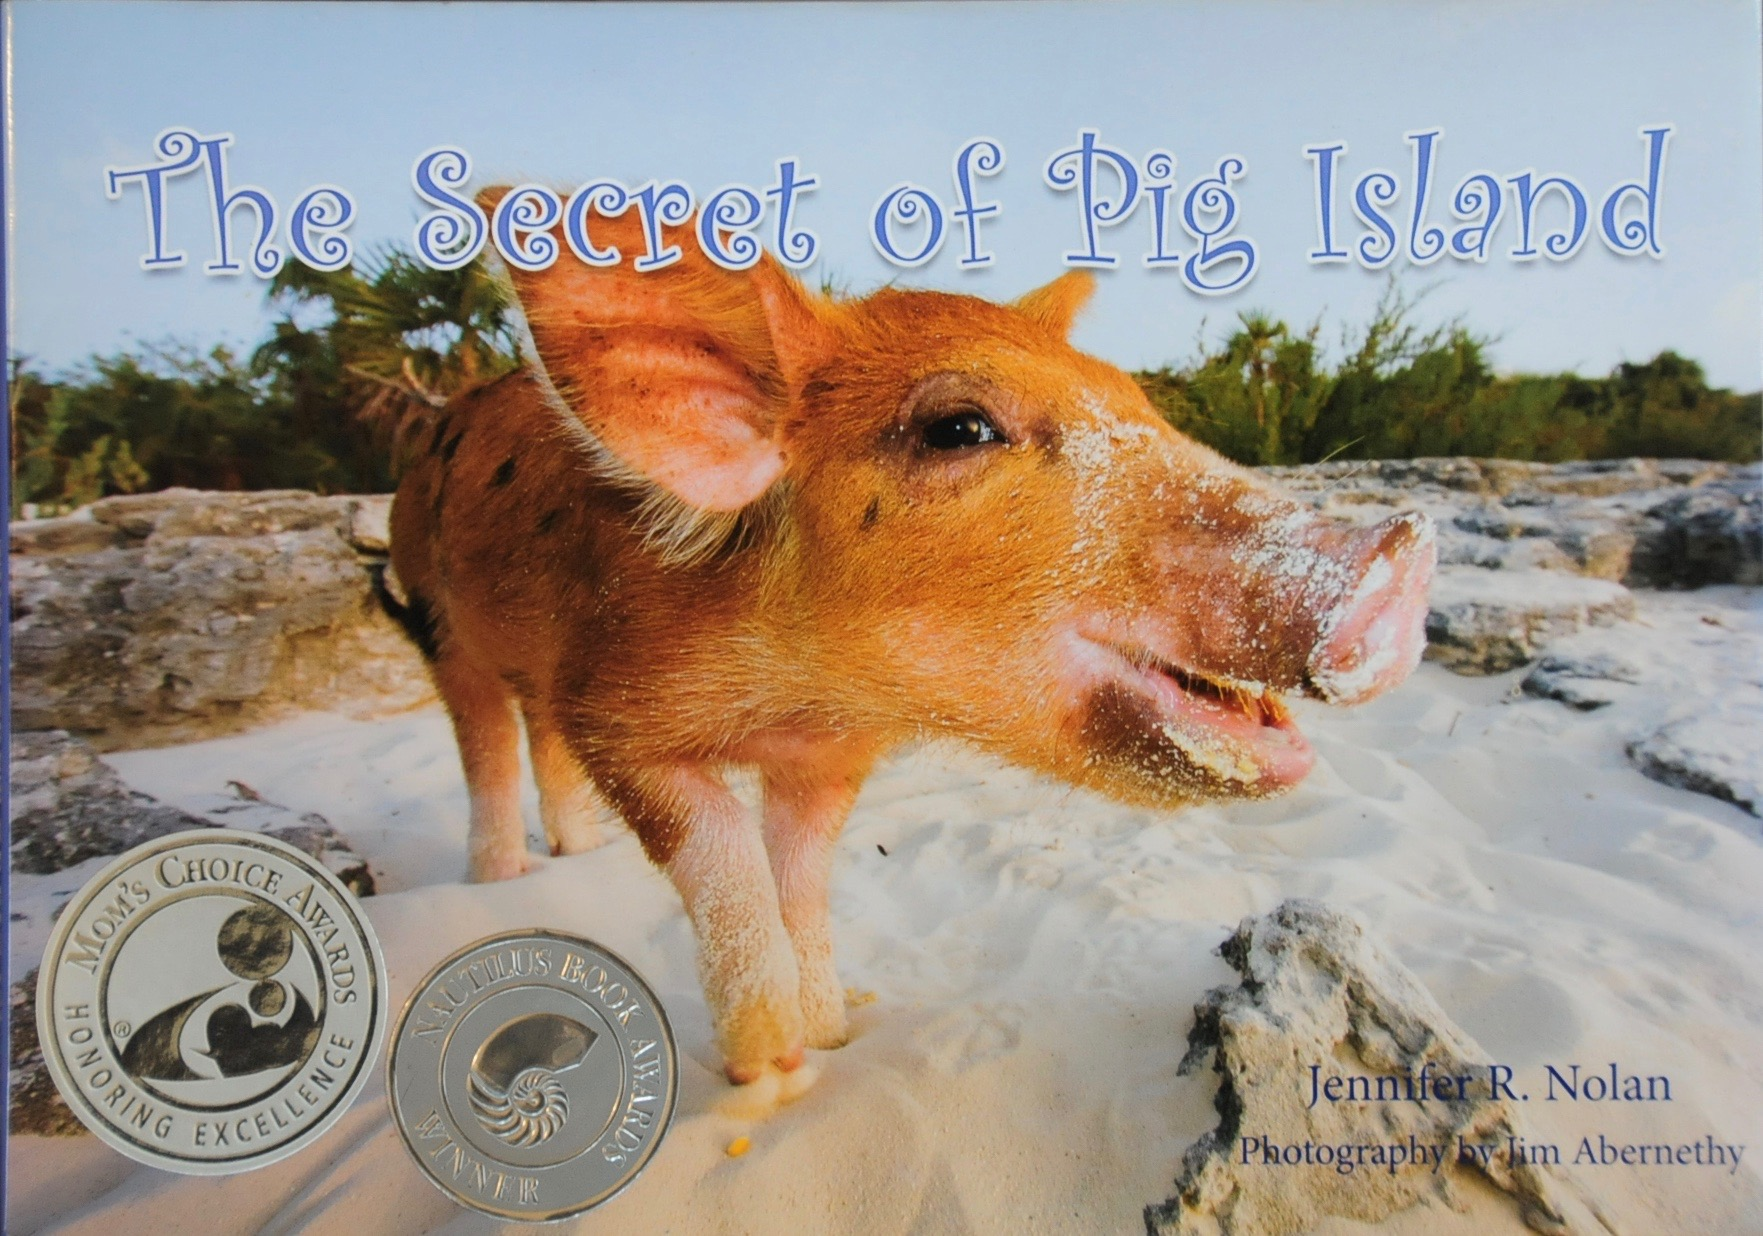 Buy The Secret of Pig Island by Jennifer R. Nolan